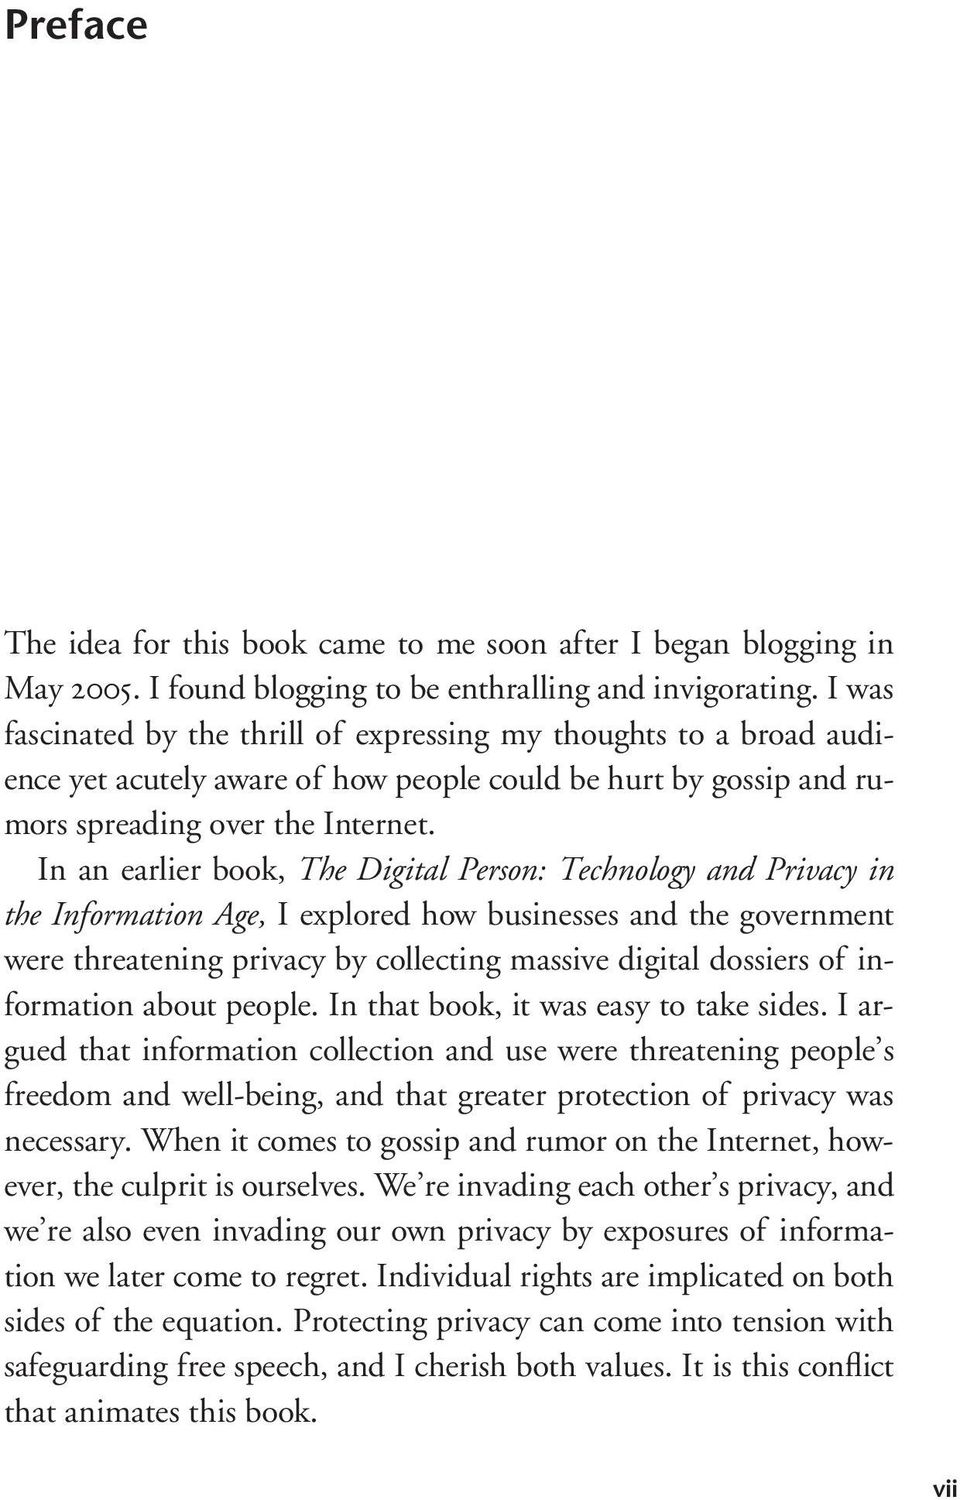 In an earlier book, The Digital Person: Technology and Privacy in the Information Age, I explored how businesses and the government were threatening privacy by collecting massive digital dossiers of